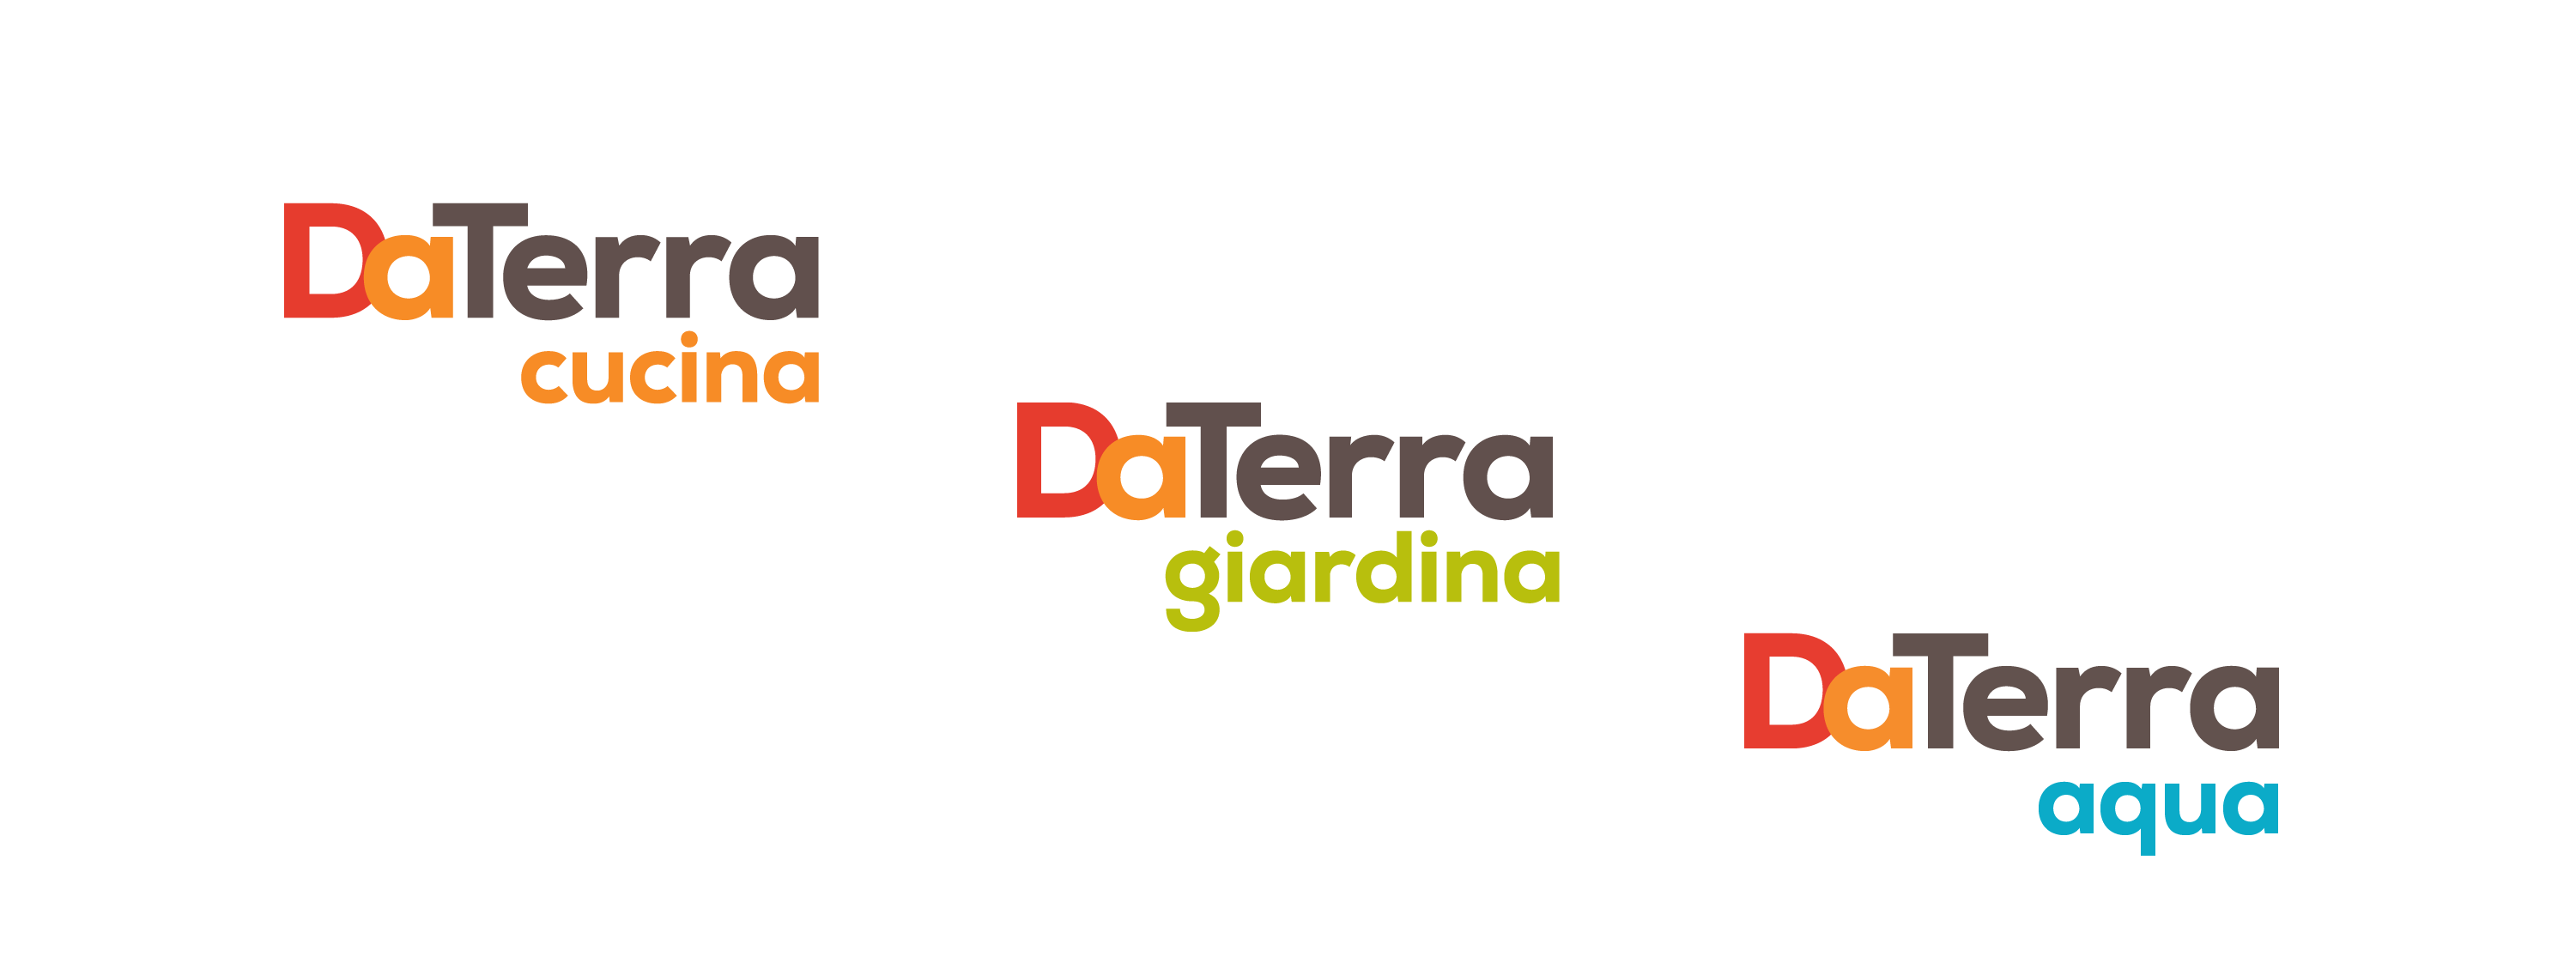 Brand and sub-brand designs for DaTerra.